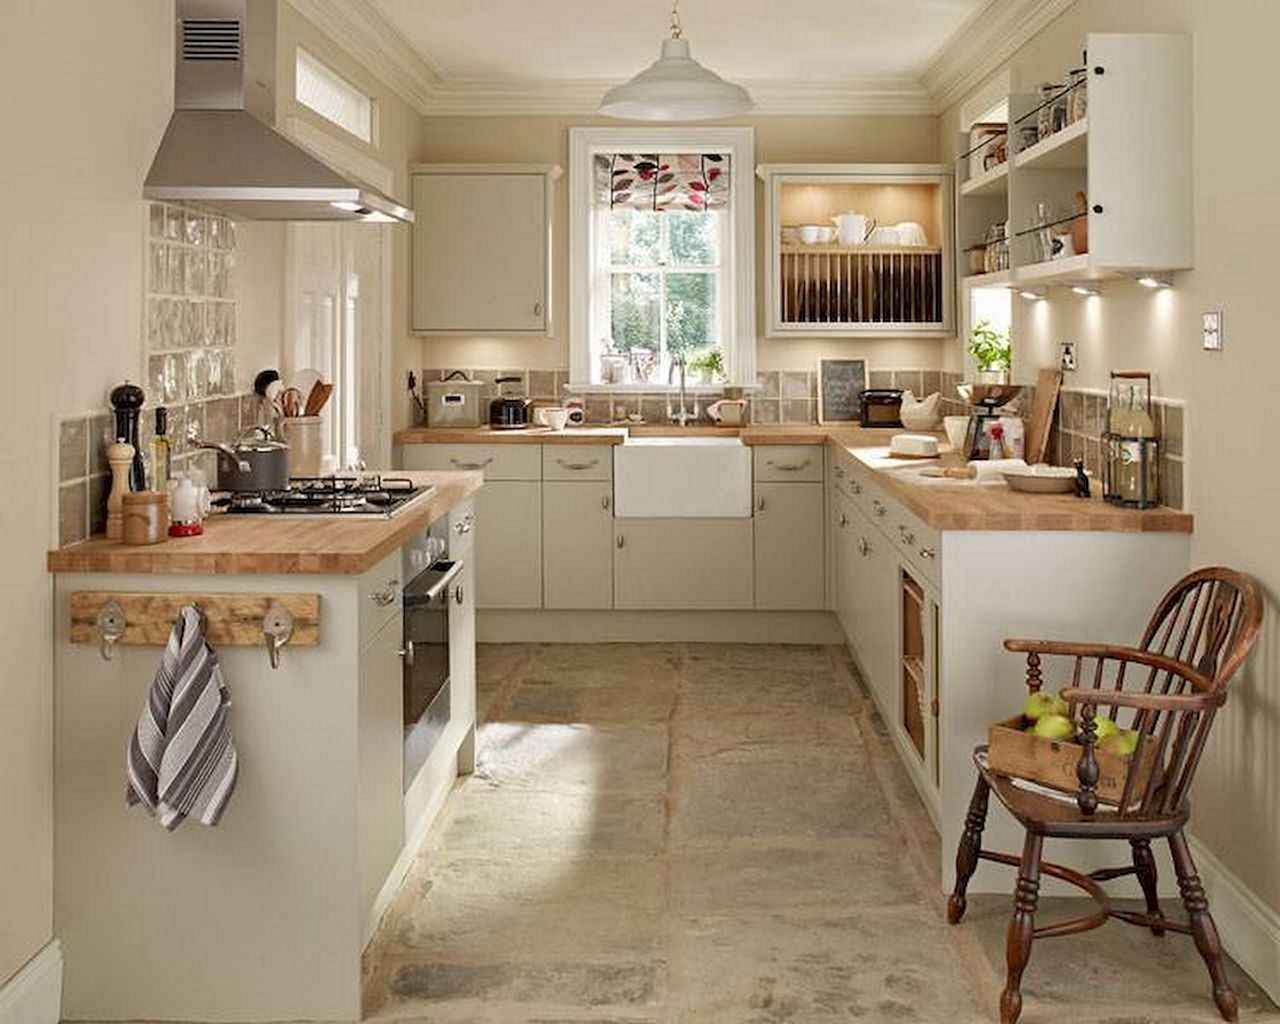 12 Beautiful Simple French Country Kitchen Ideas For Small Space Decor It S Small Country Kitchens Small French Country Kitchen French Country Kitchens